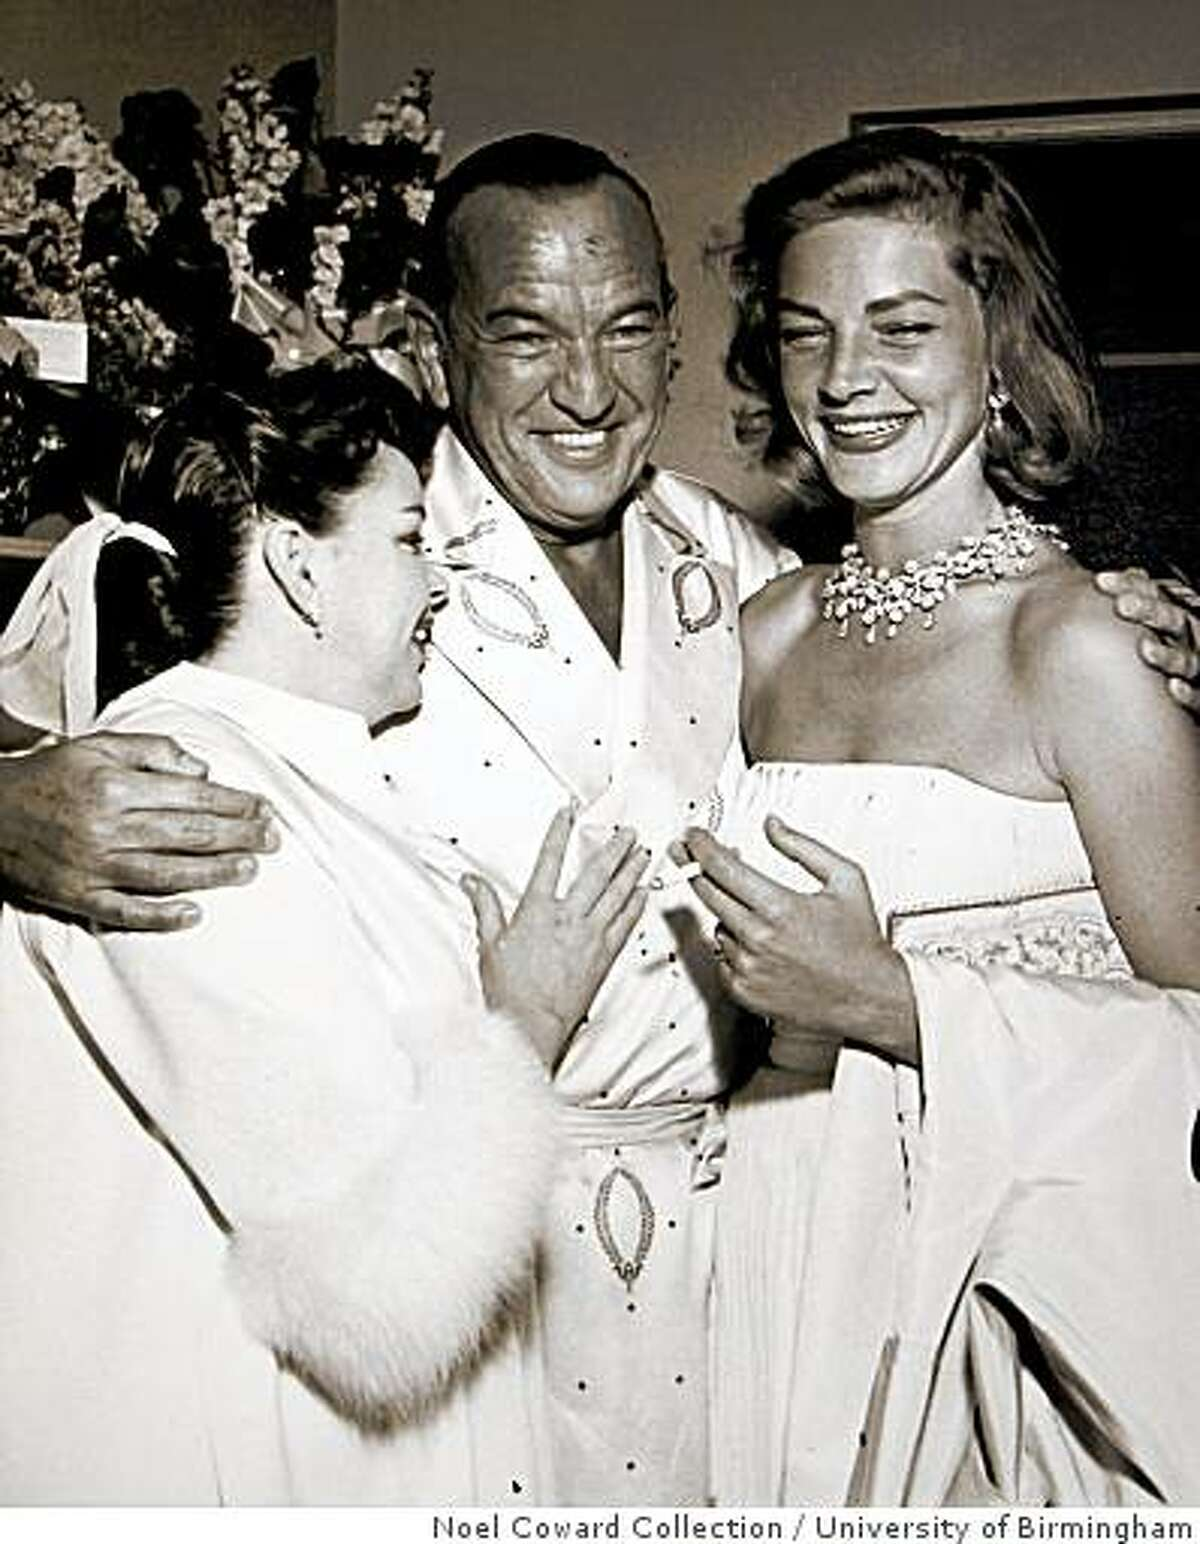 After experiencing a serious career slump following the Second World War, Coward came back with a vengeance in a smash hit nightclub act of his own songs. His star-turn in Las Vegas lead to a complete resurgence of Coward?s career. He?s shown here backstage at Wilbur Clark?s Desert Inn in Las Vegas with Judy Garland and Lauren Bacall, 1955. The dressing gown pictured here is on display in the exhibition.